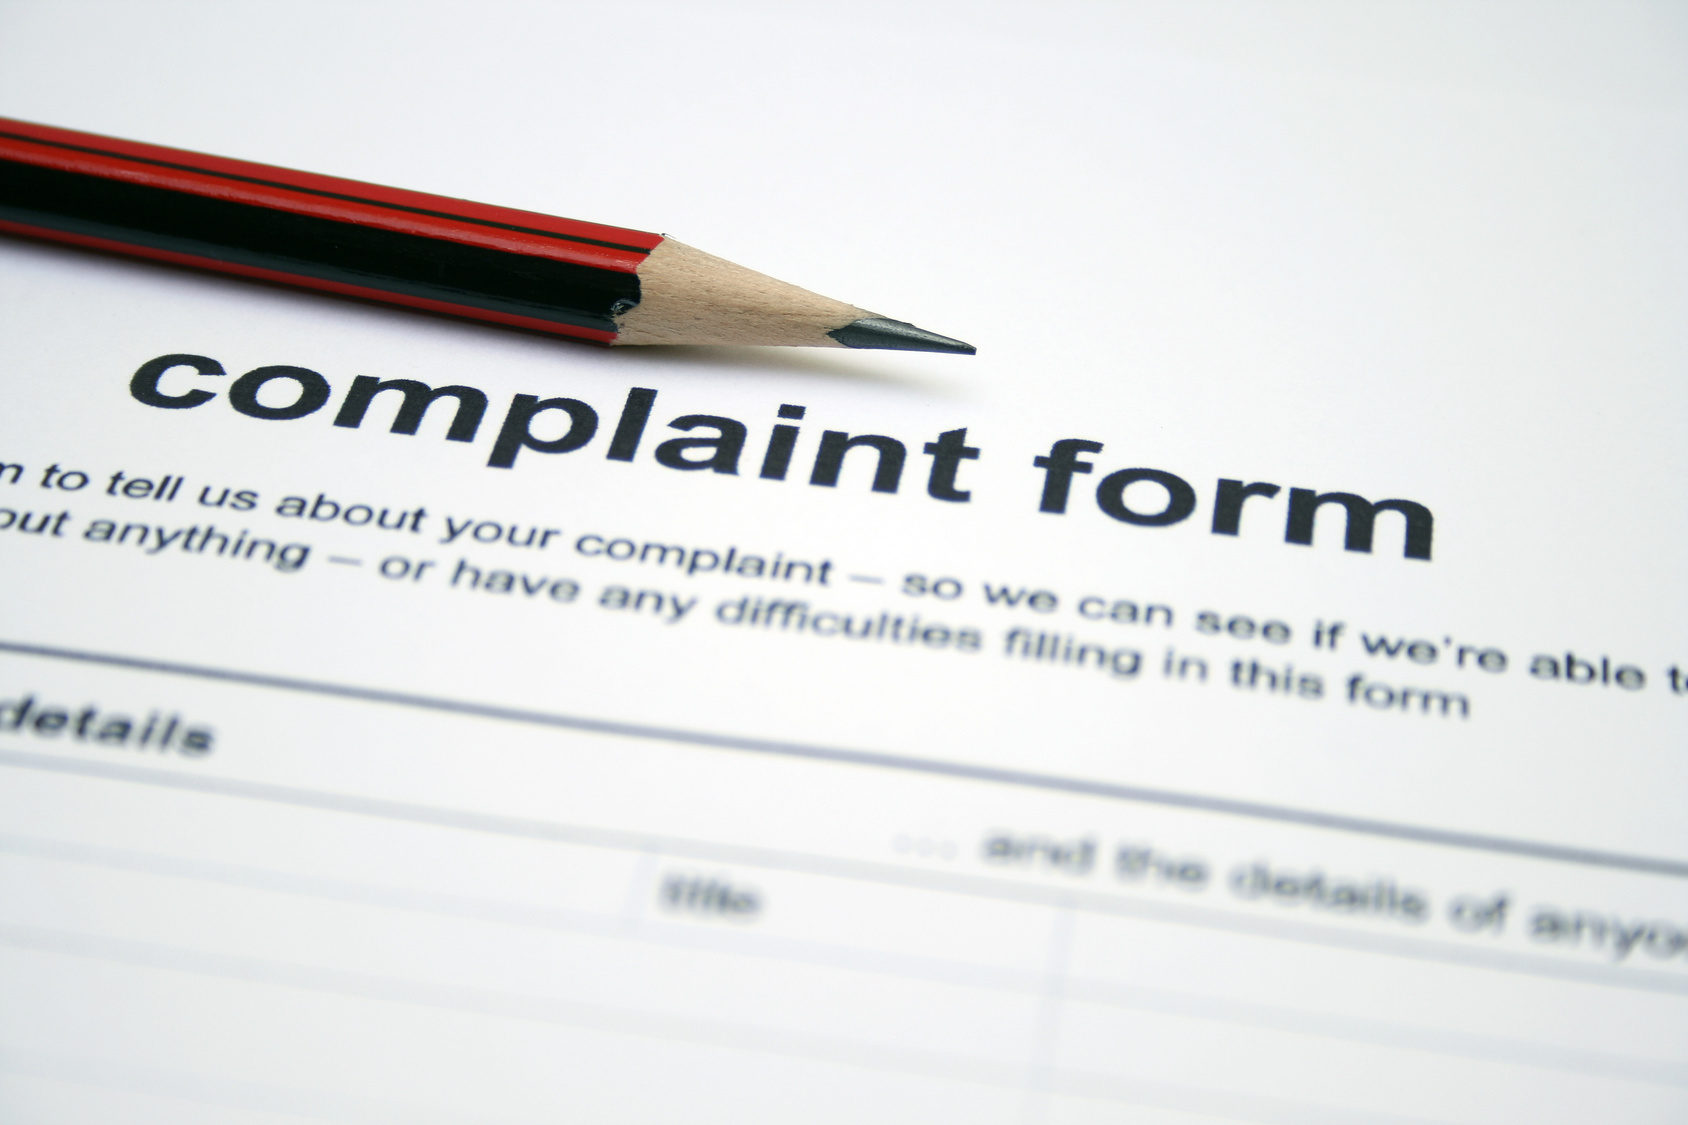 Debt Collection Agency >> Debt collection and identity theft top the list of complaints to the FTC in 2015